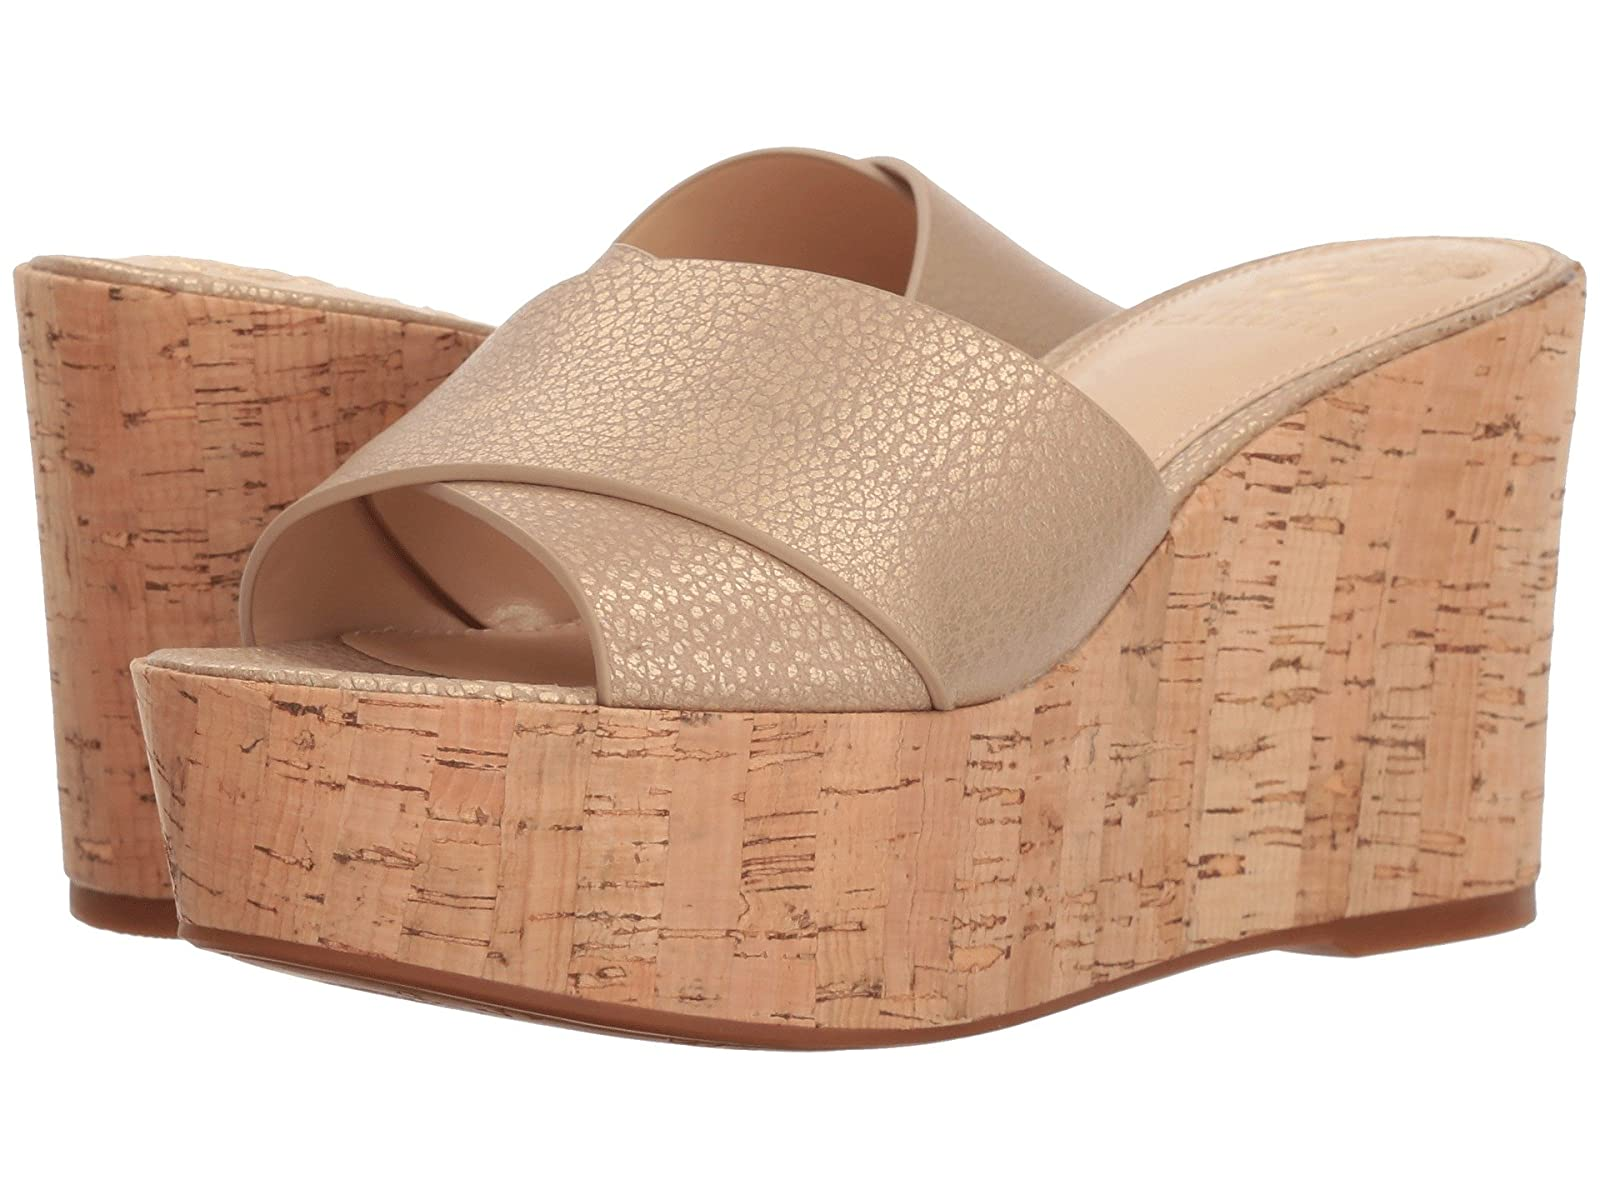 Vince Camuto KessinaAtmospheric grades have affordable shoes